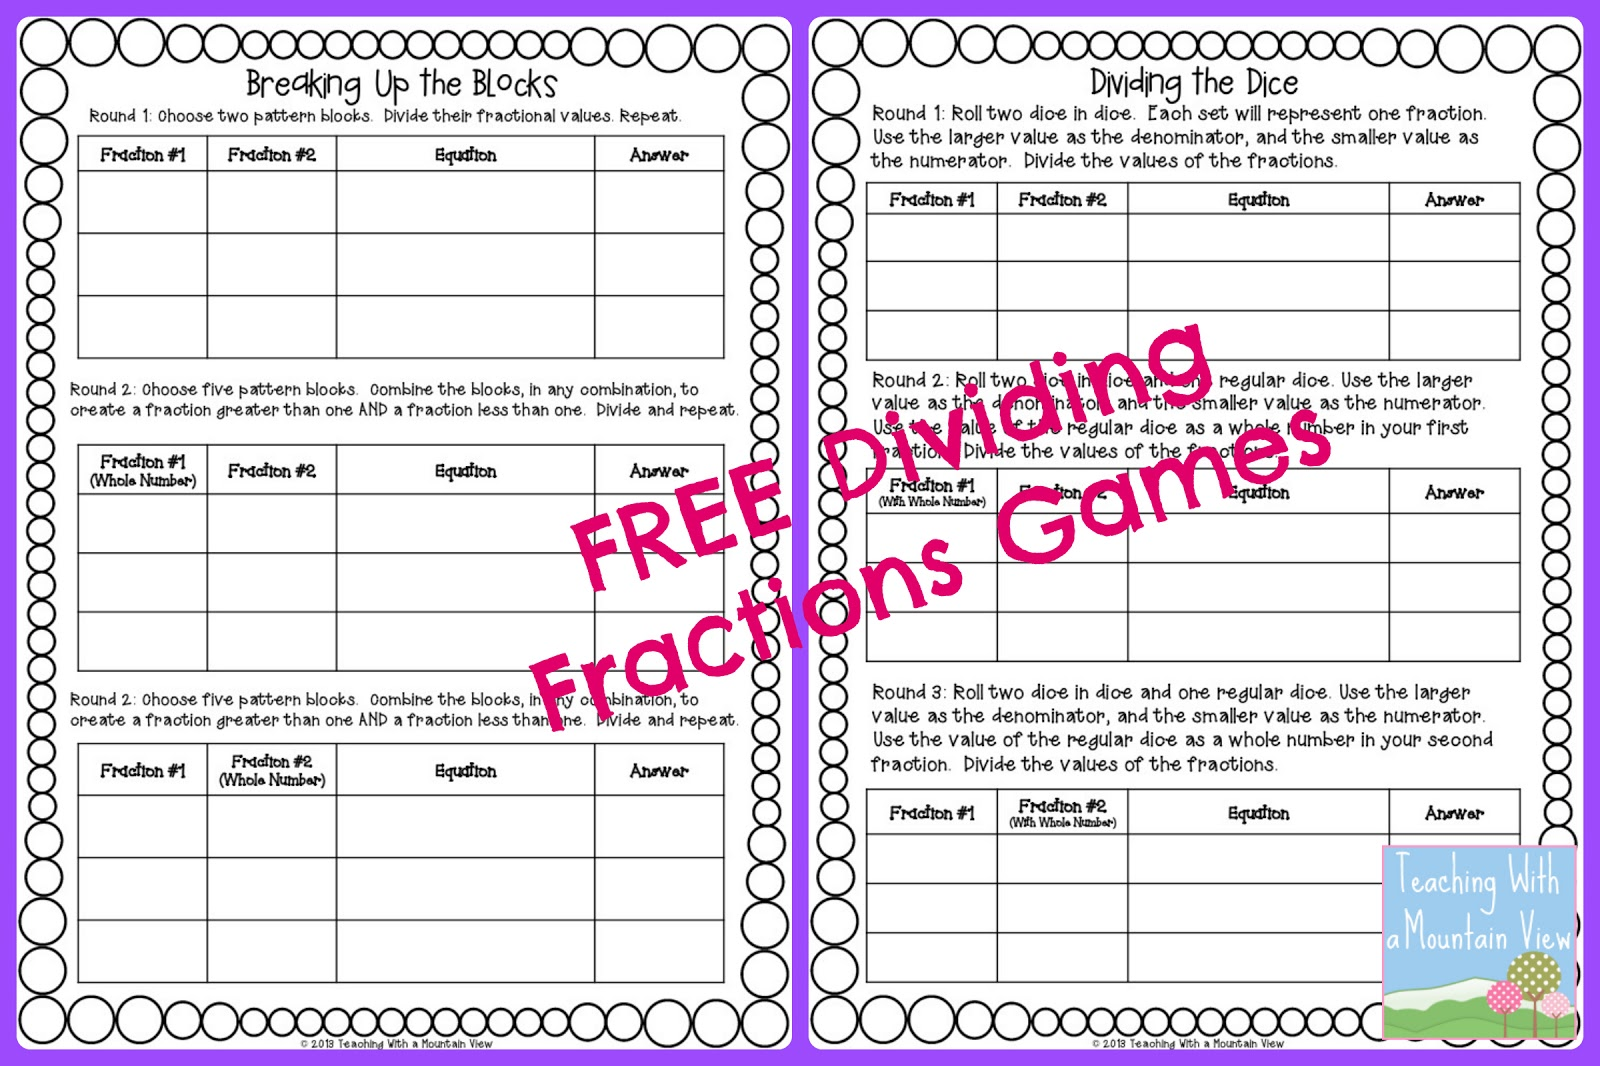 worksheet Divide Fractions Worksheets teaching with a mountain view dividing fractions anchor chart game freebie and math journal